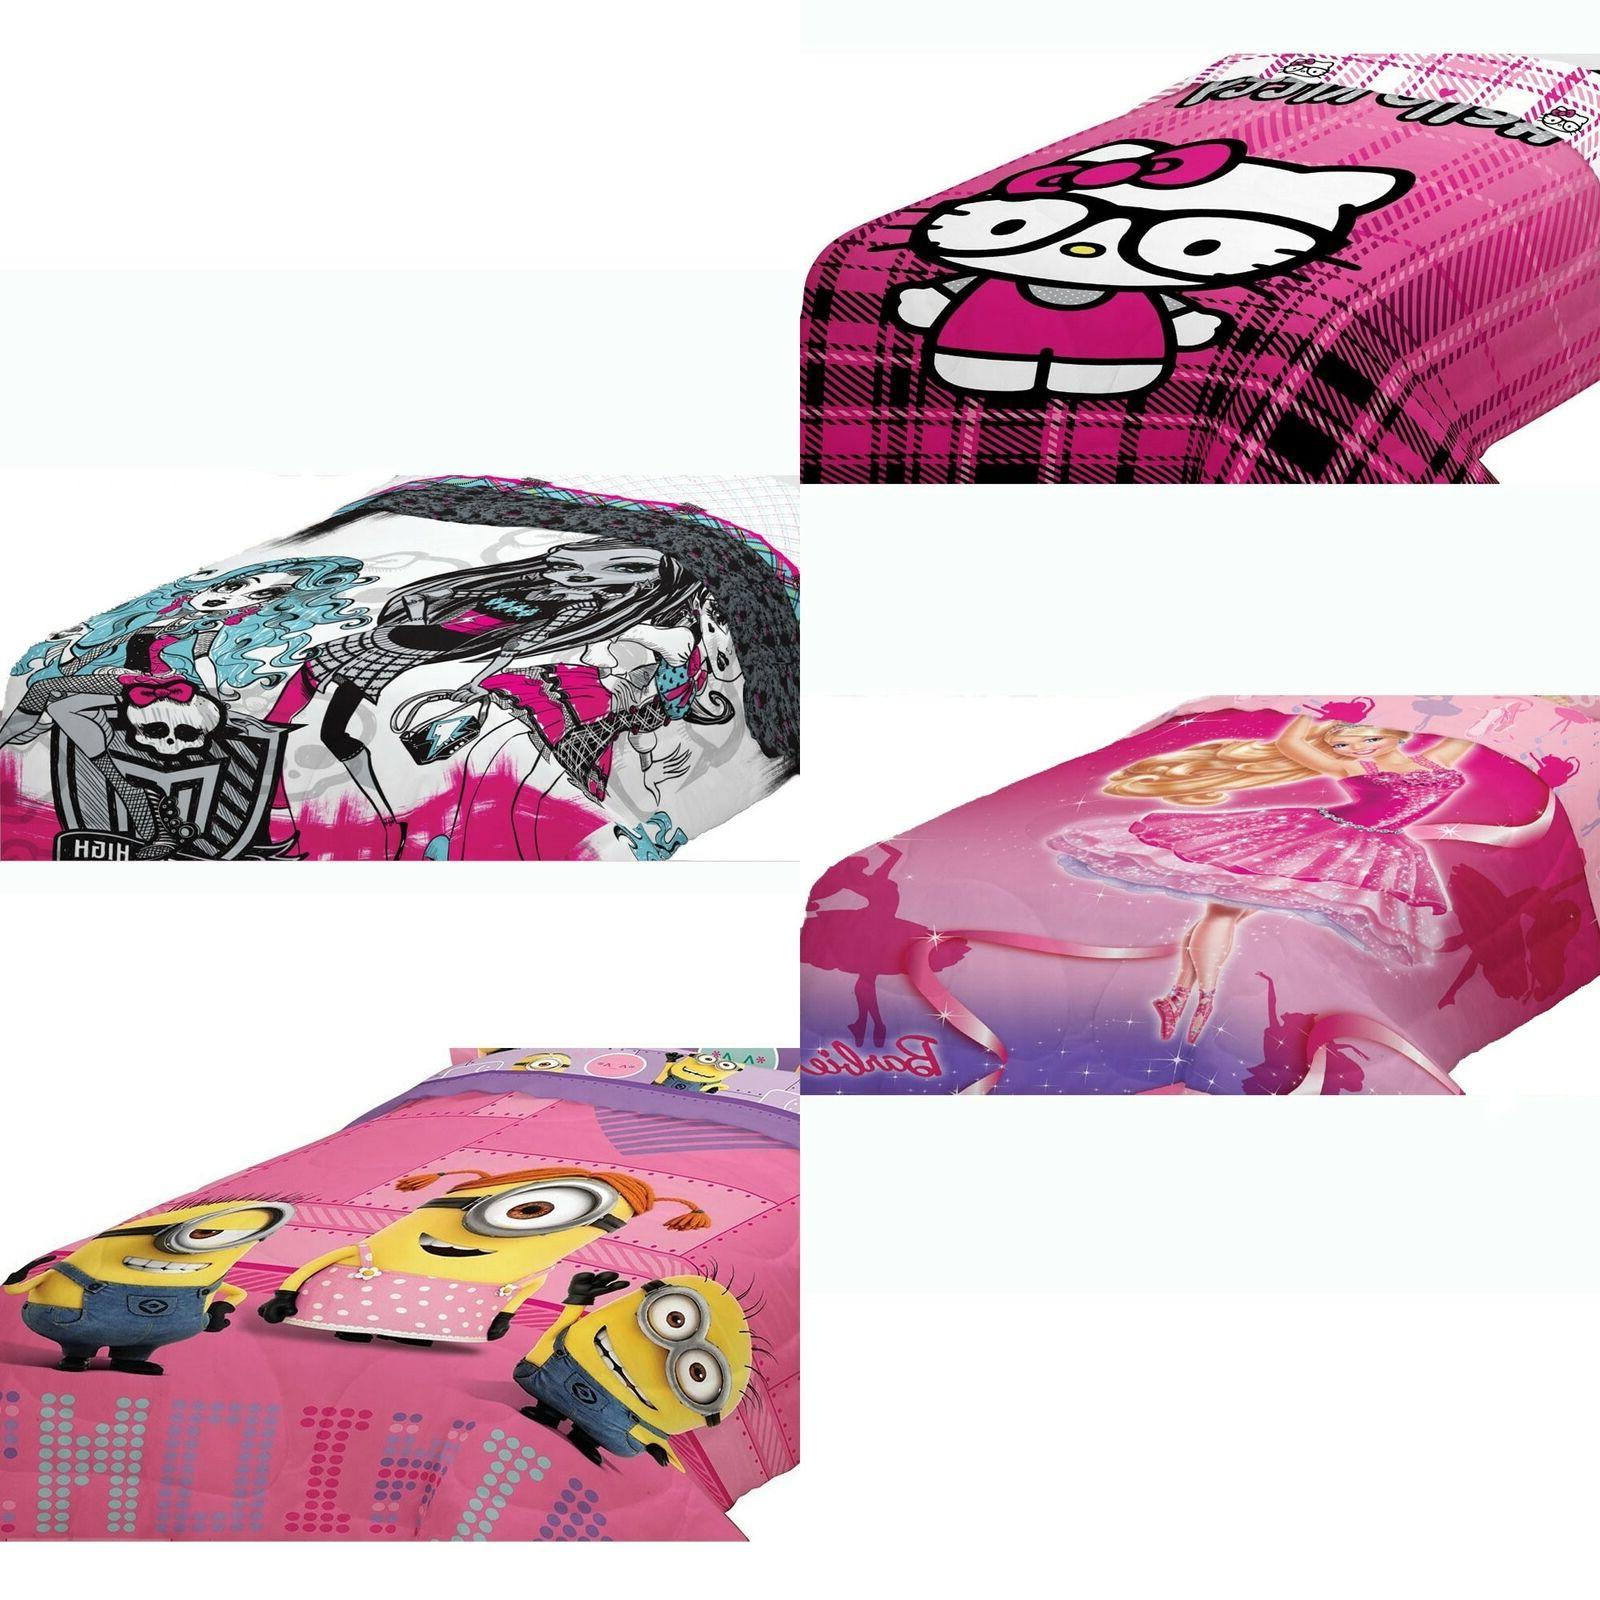 nEw GIRLS THEMED BED COMFORTER - Hello Kitty Barbie LaLaLoop